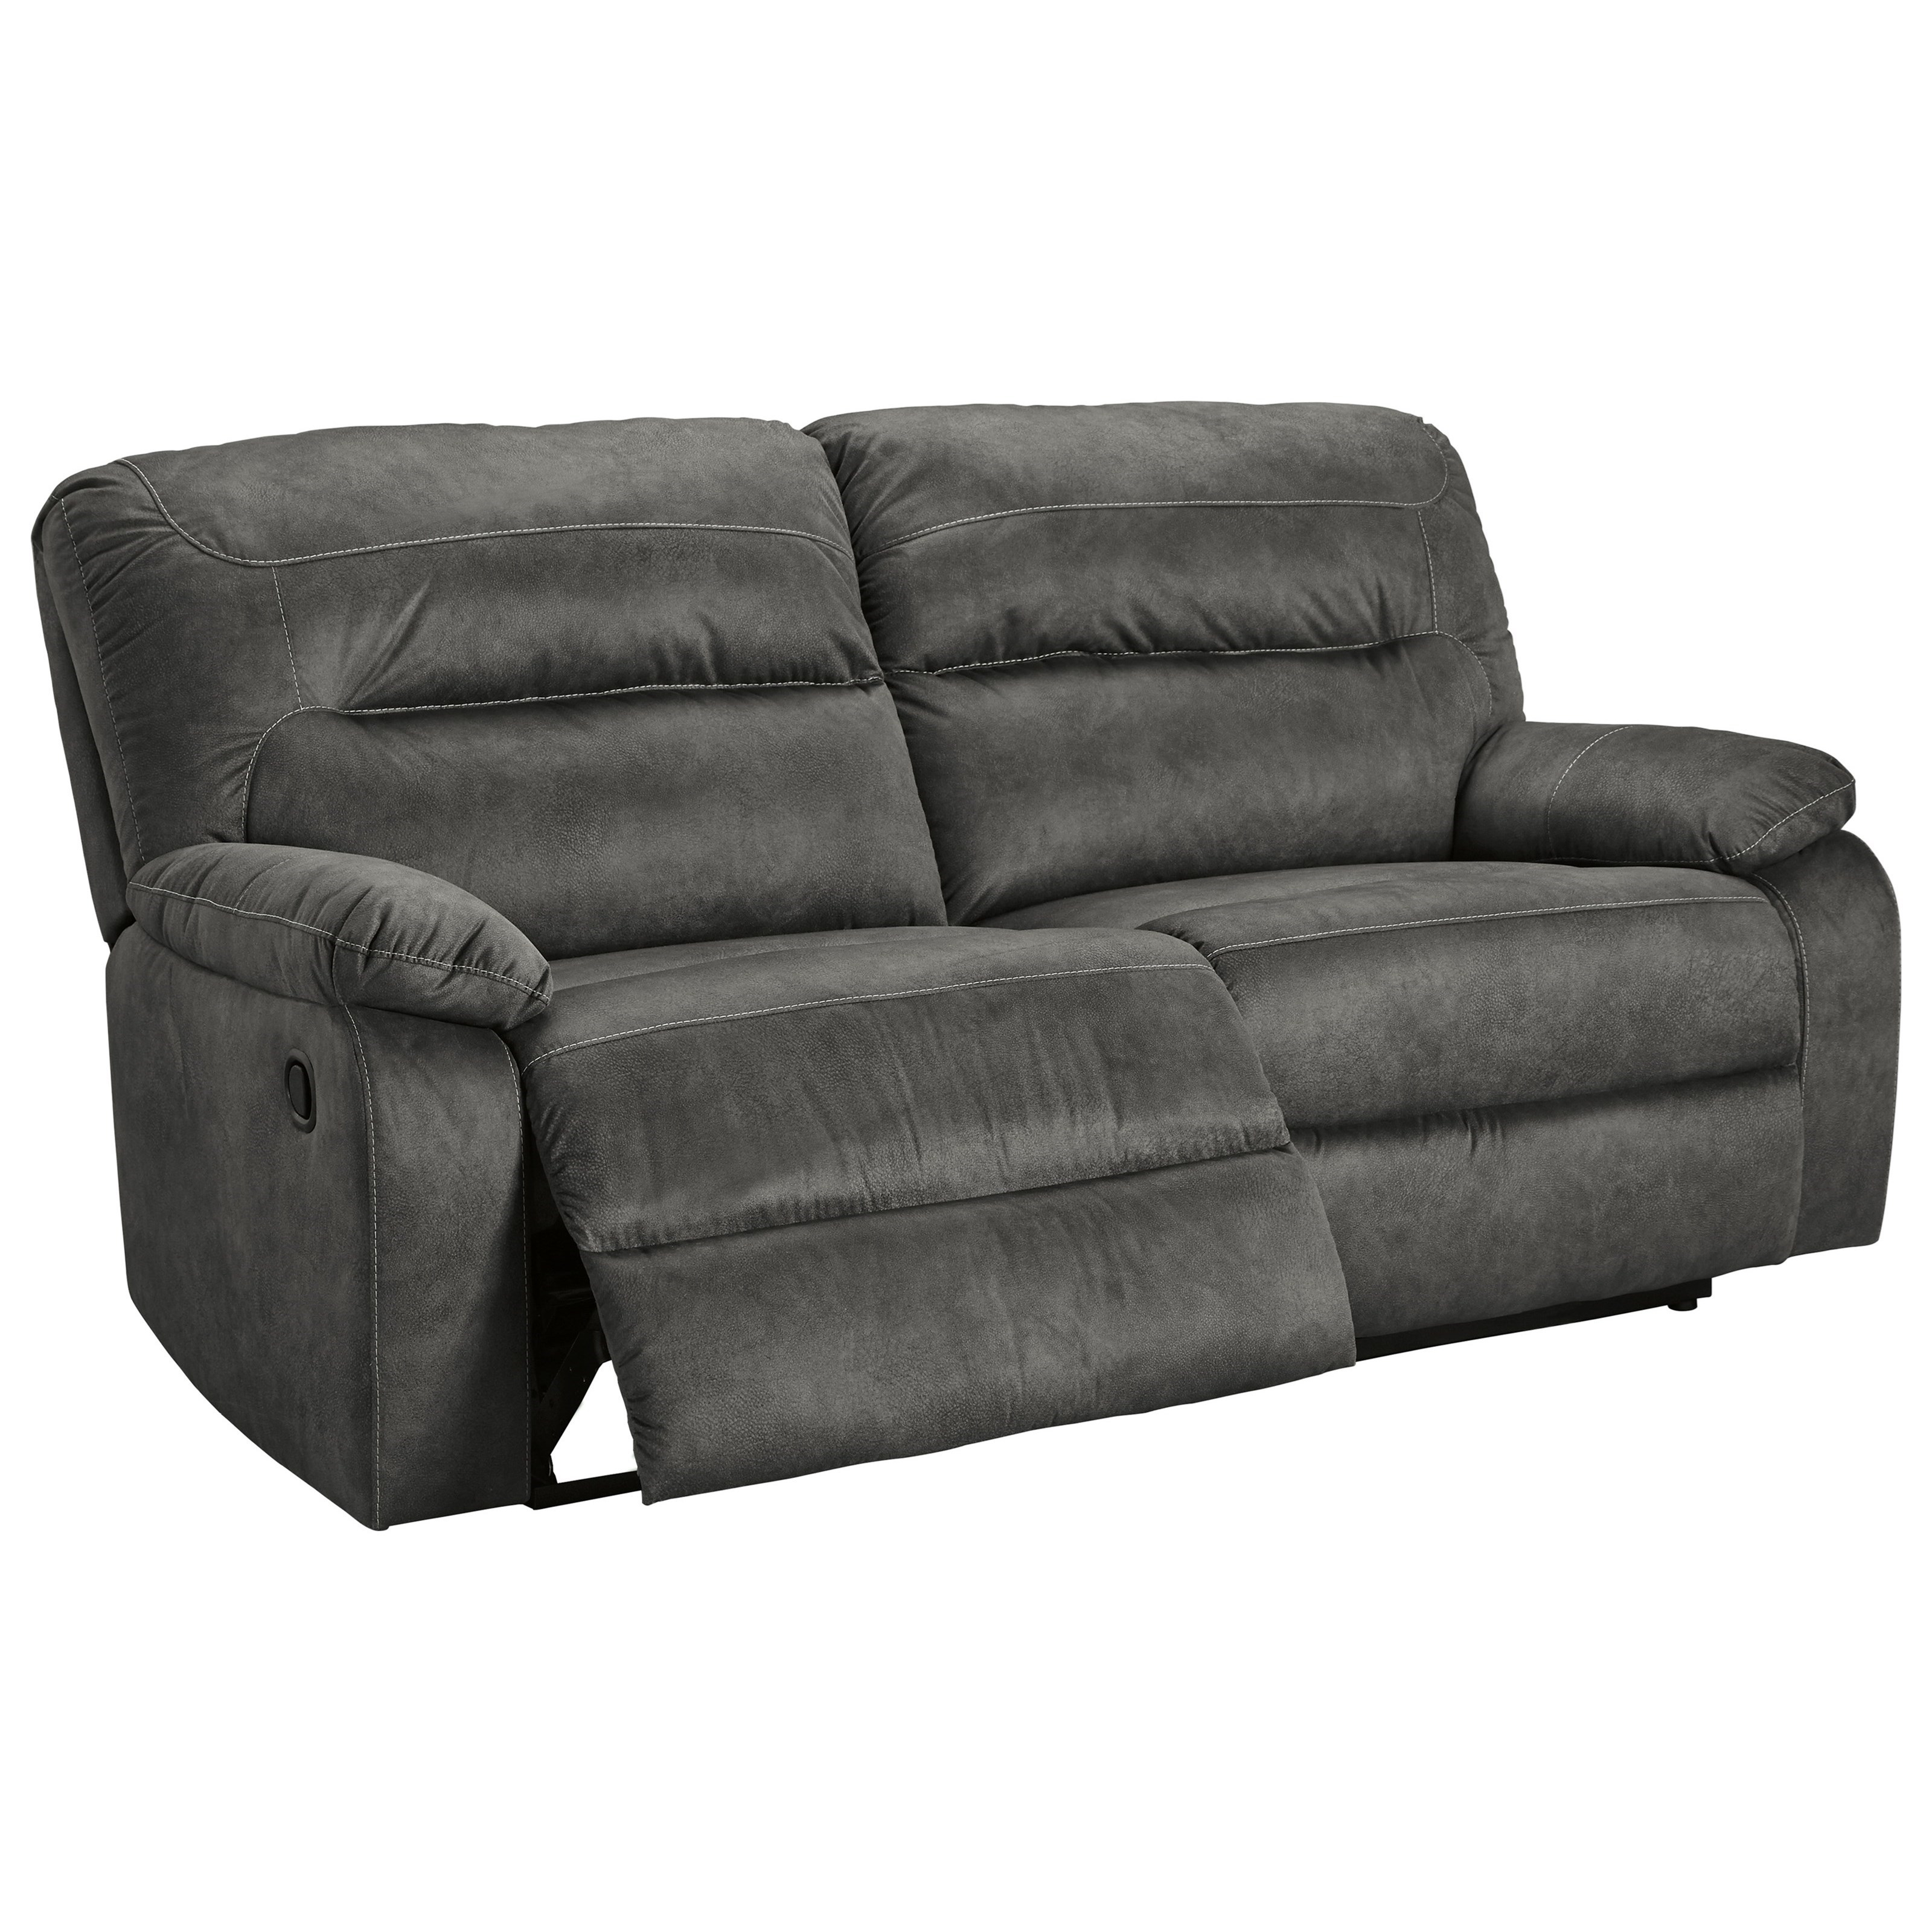 Bolzano 2 Seat Reclining Sofa by Benchcraft at Miller Waldrop Furniture and Decor